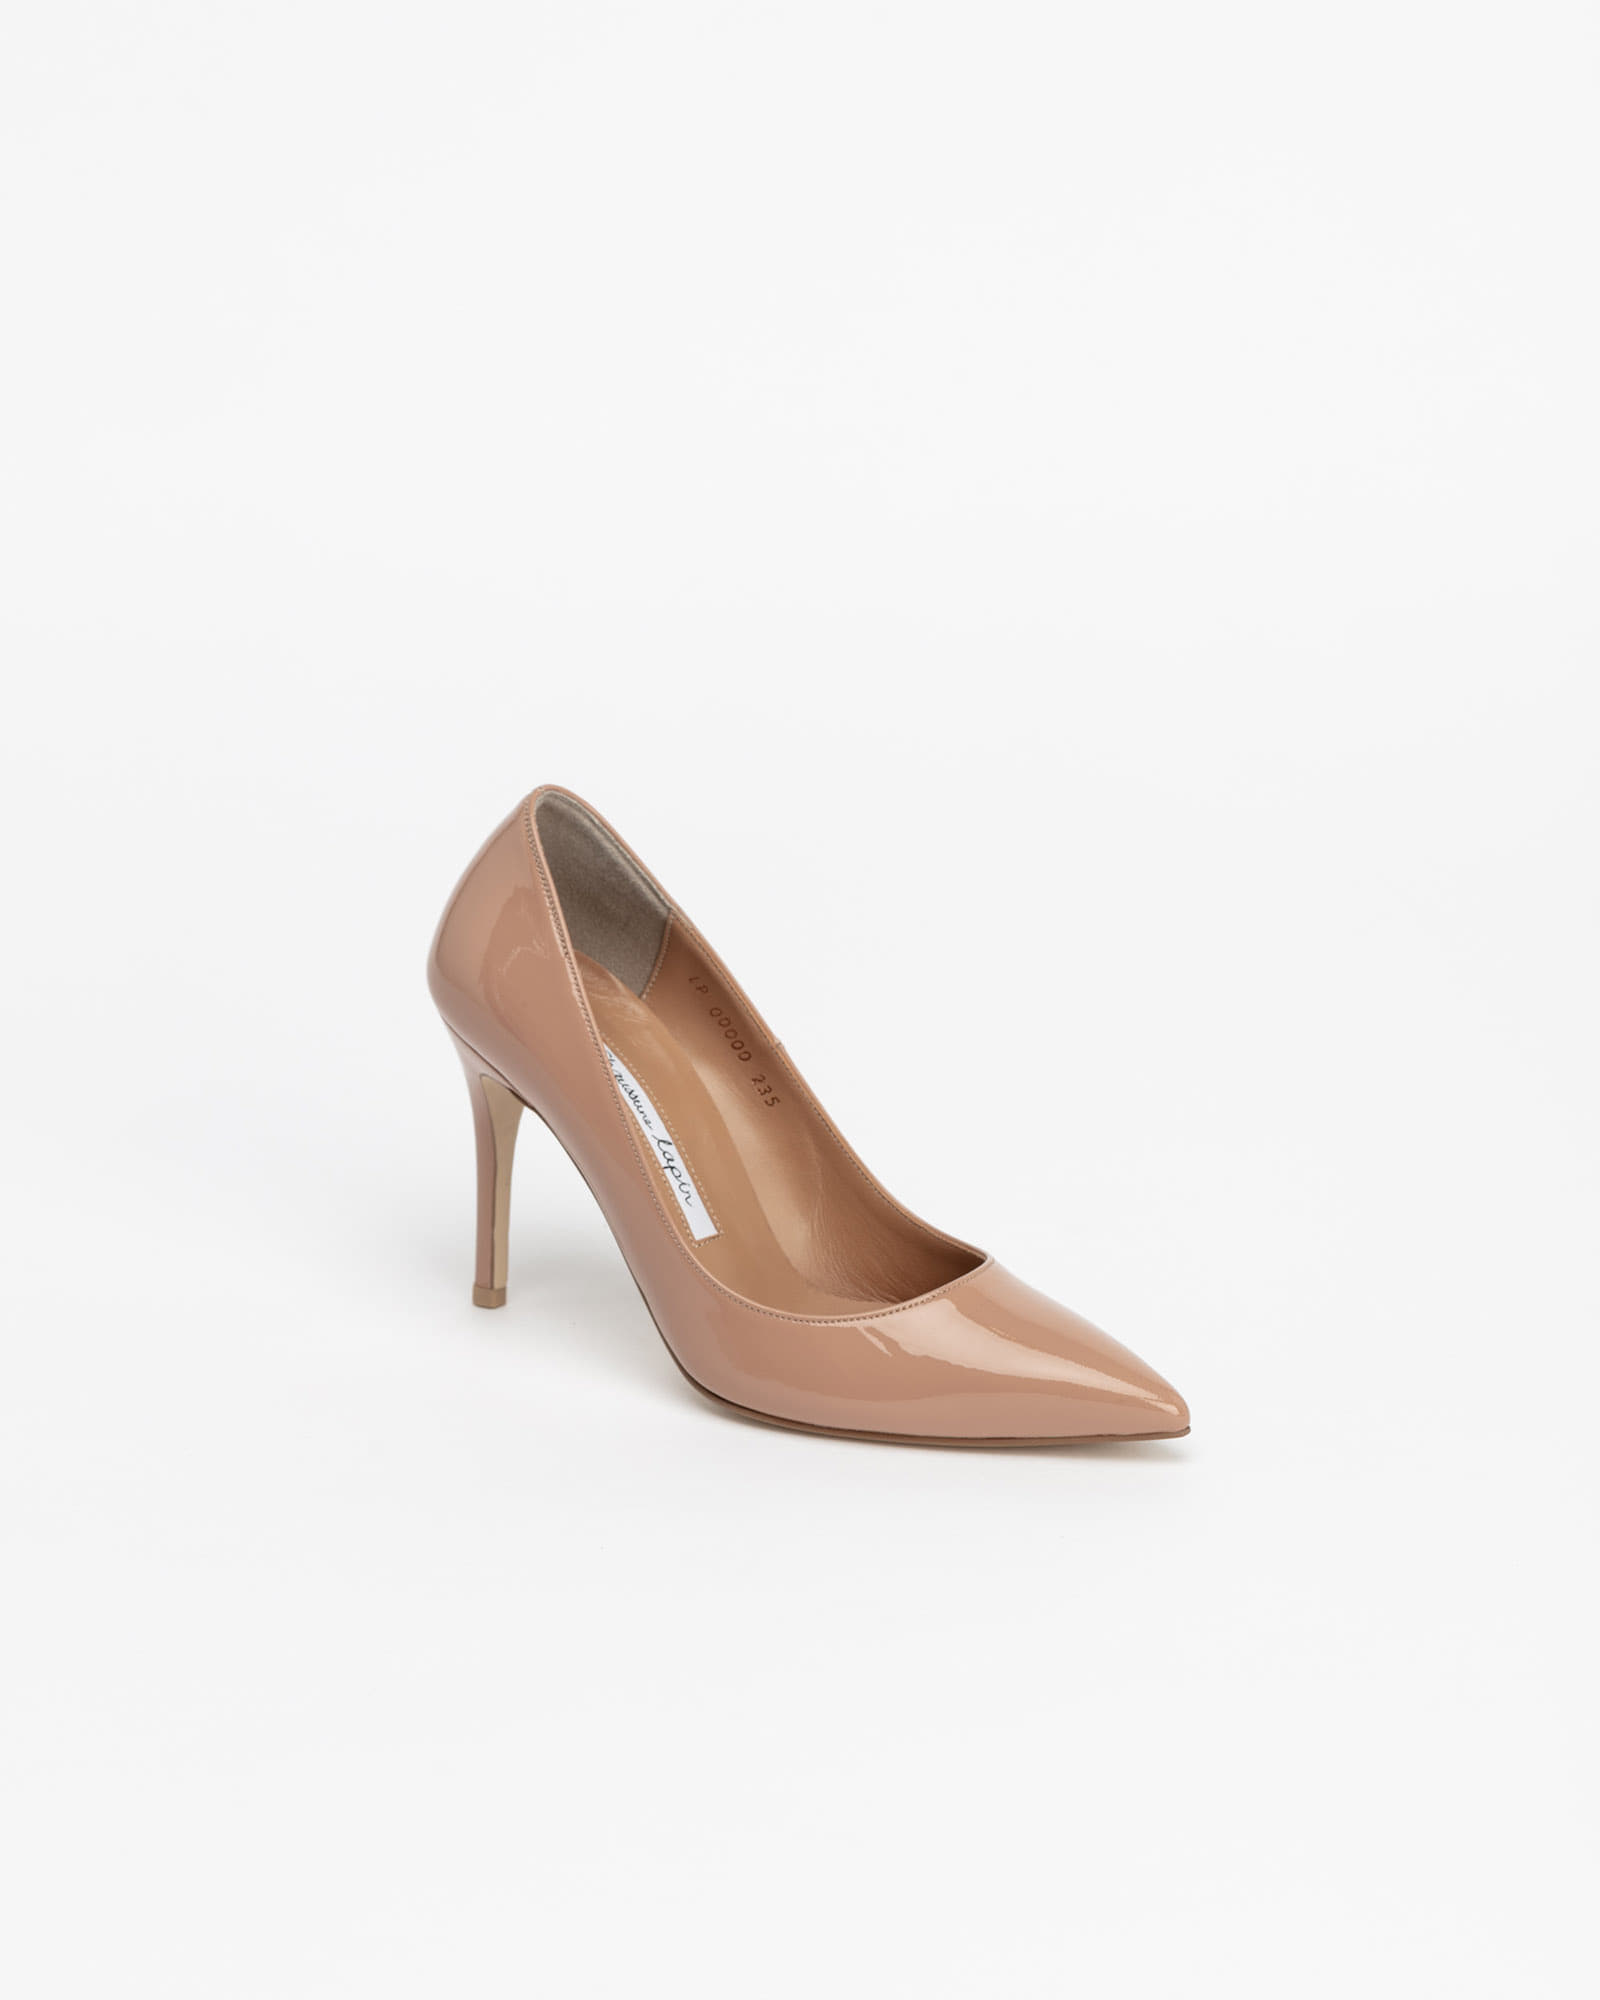 Parlor Stiletto Pumps in Neo Indy Pink